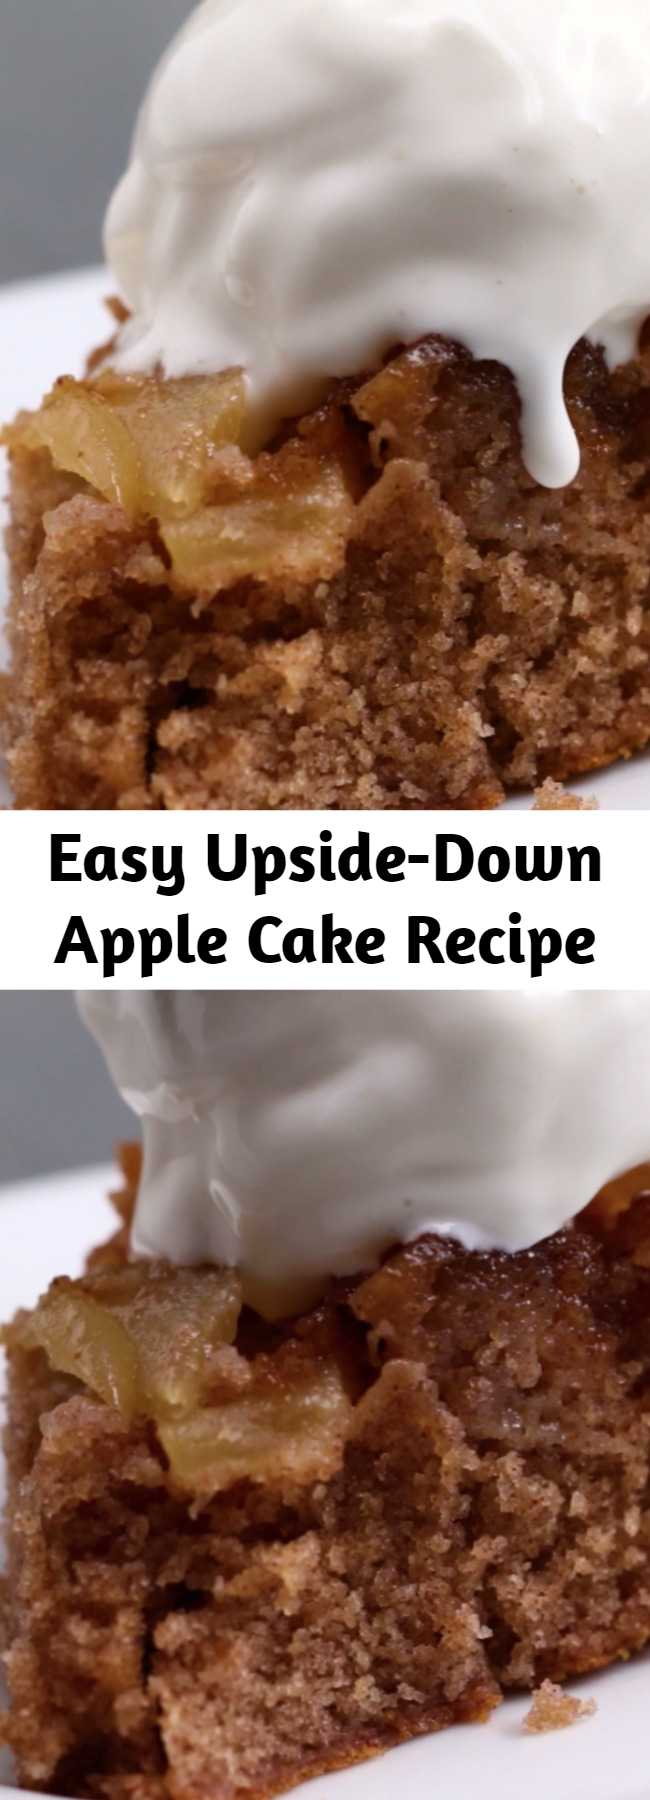 Easy Upside-Down Apple Cake Recipe - This apple cake is absolutely scrumptious! Especially with a side of vanilla ice cream.